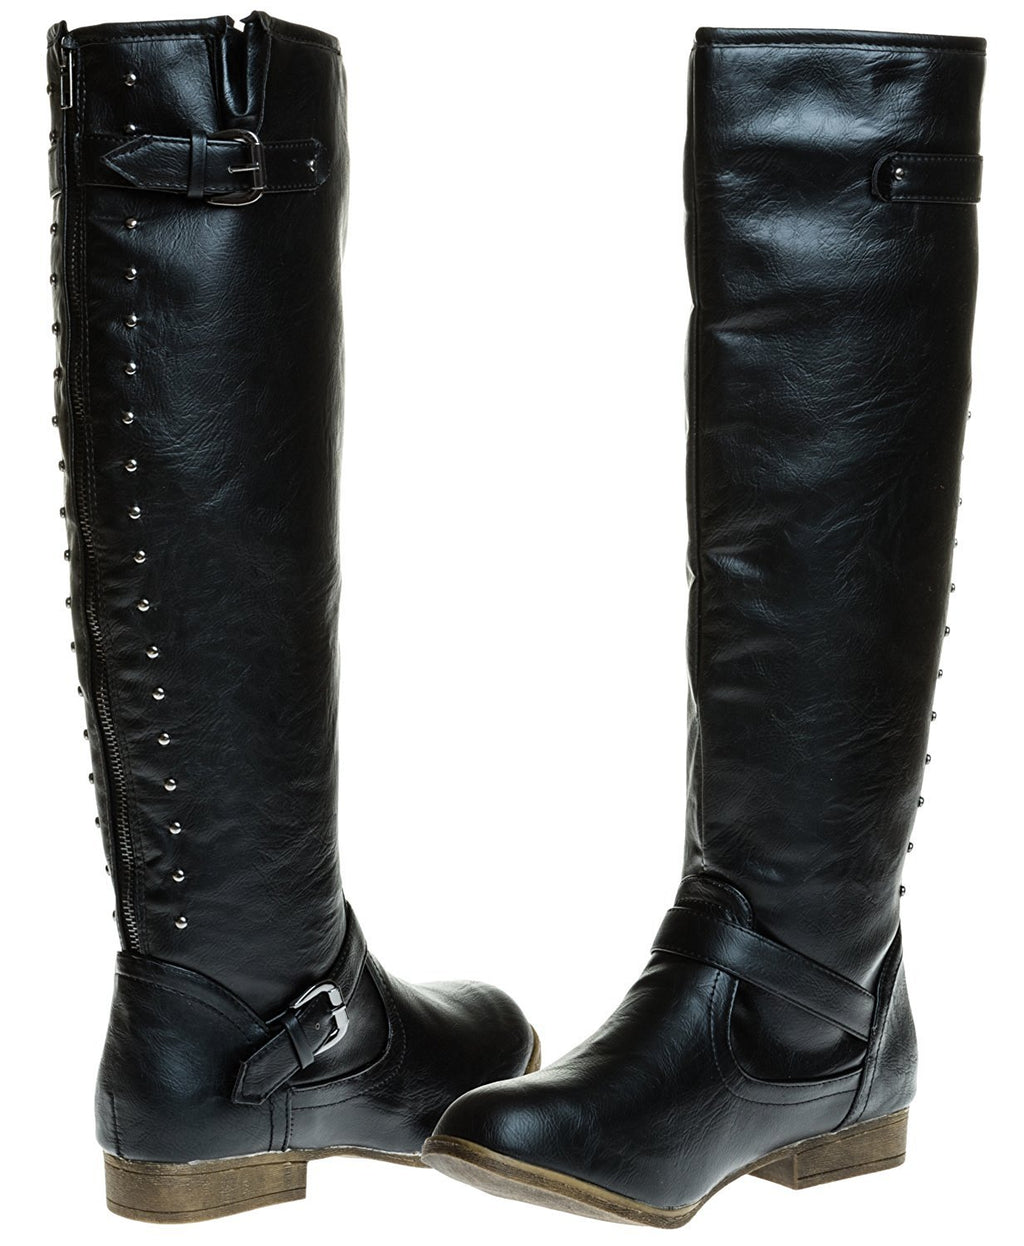 Sara Z Ladies Riding Boot with Back Studs (See More Colors & Sizes)